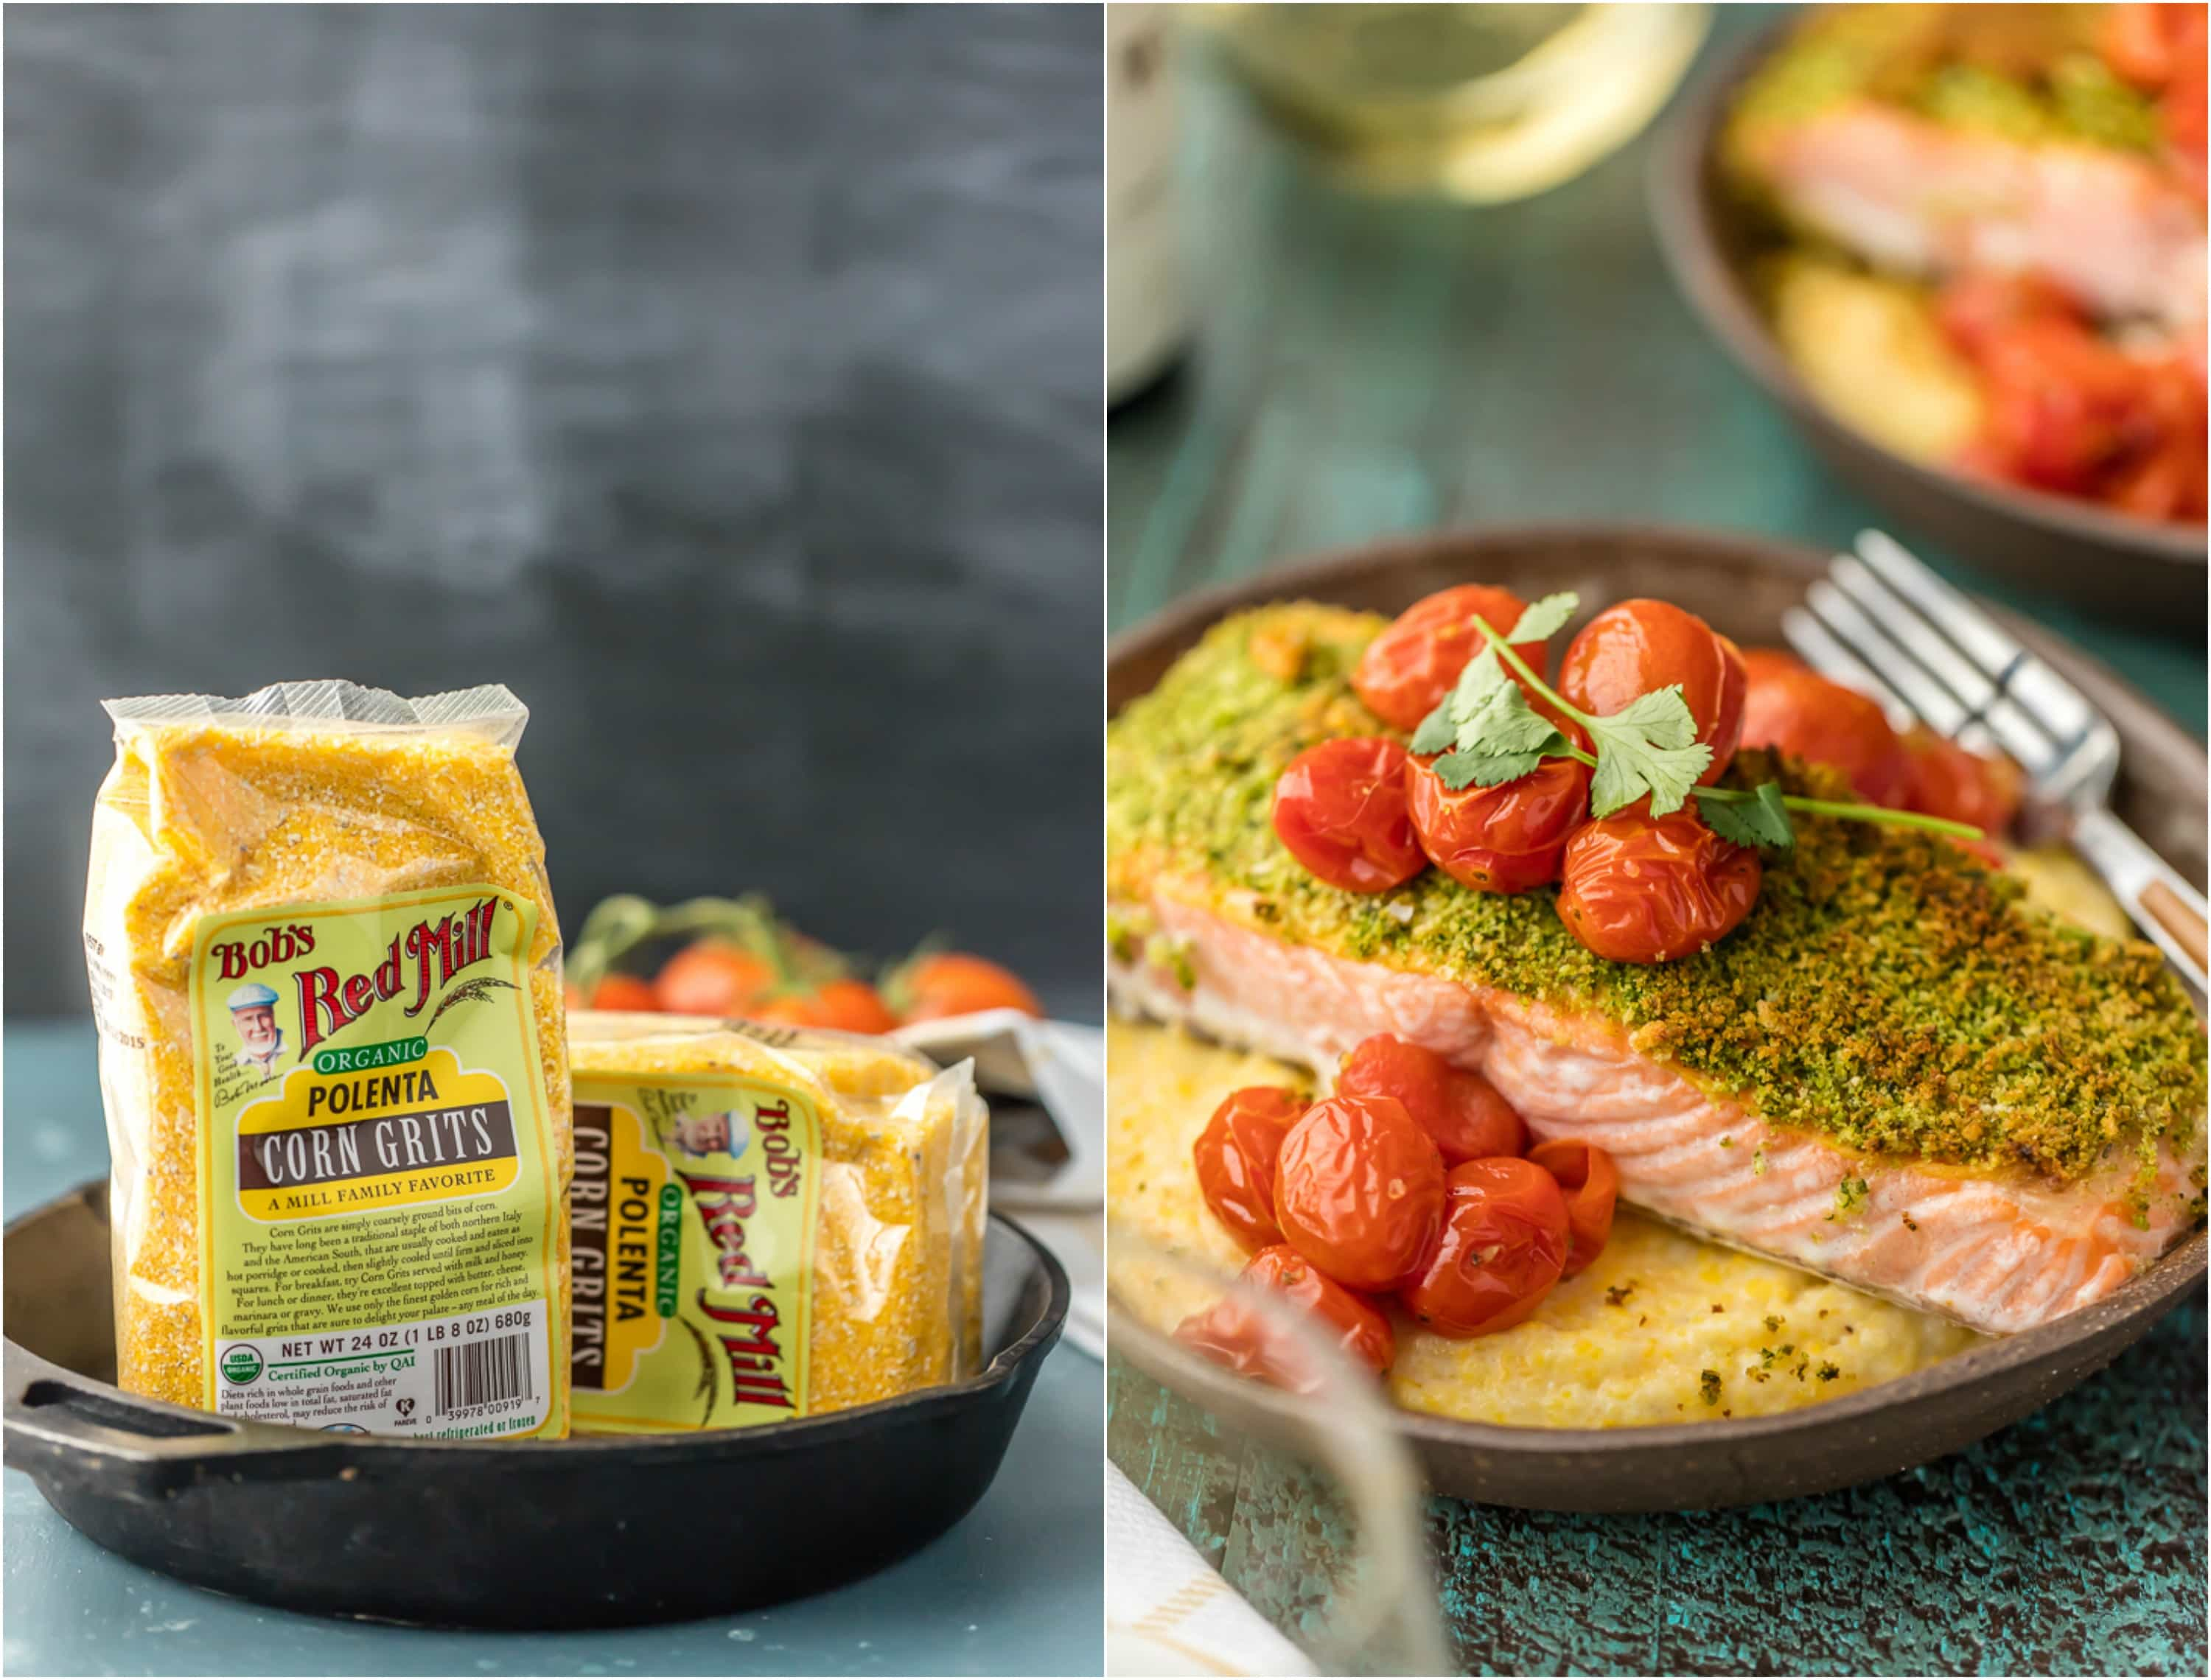 Bob's Red Mill organic polenta corn grits in a pan and crusted salmon